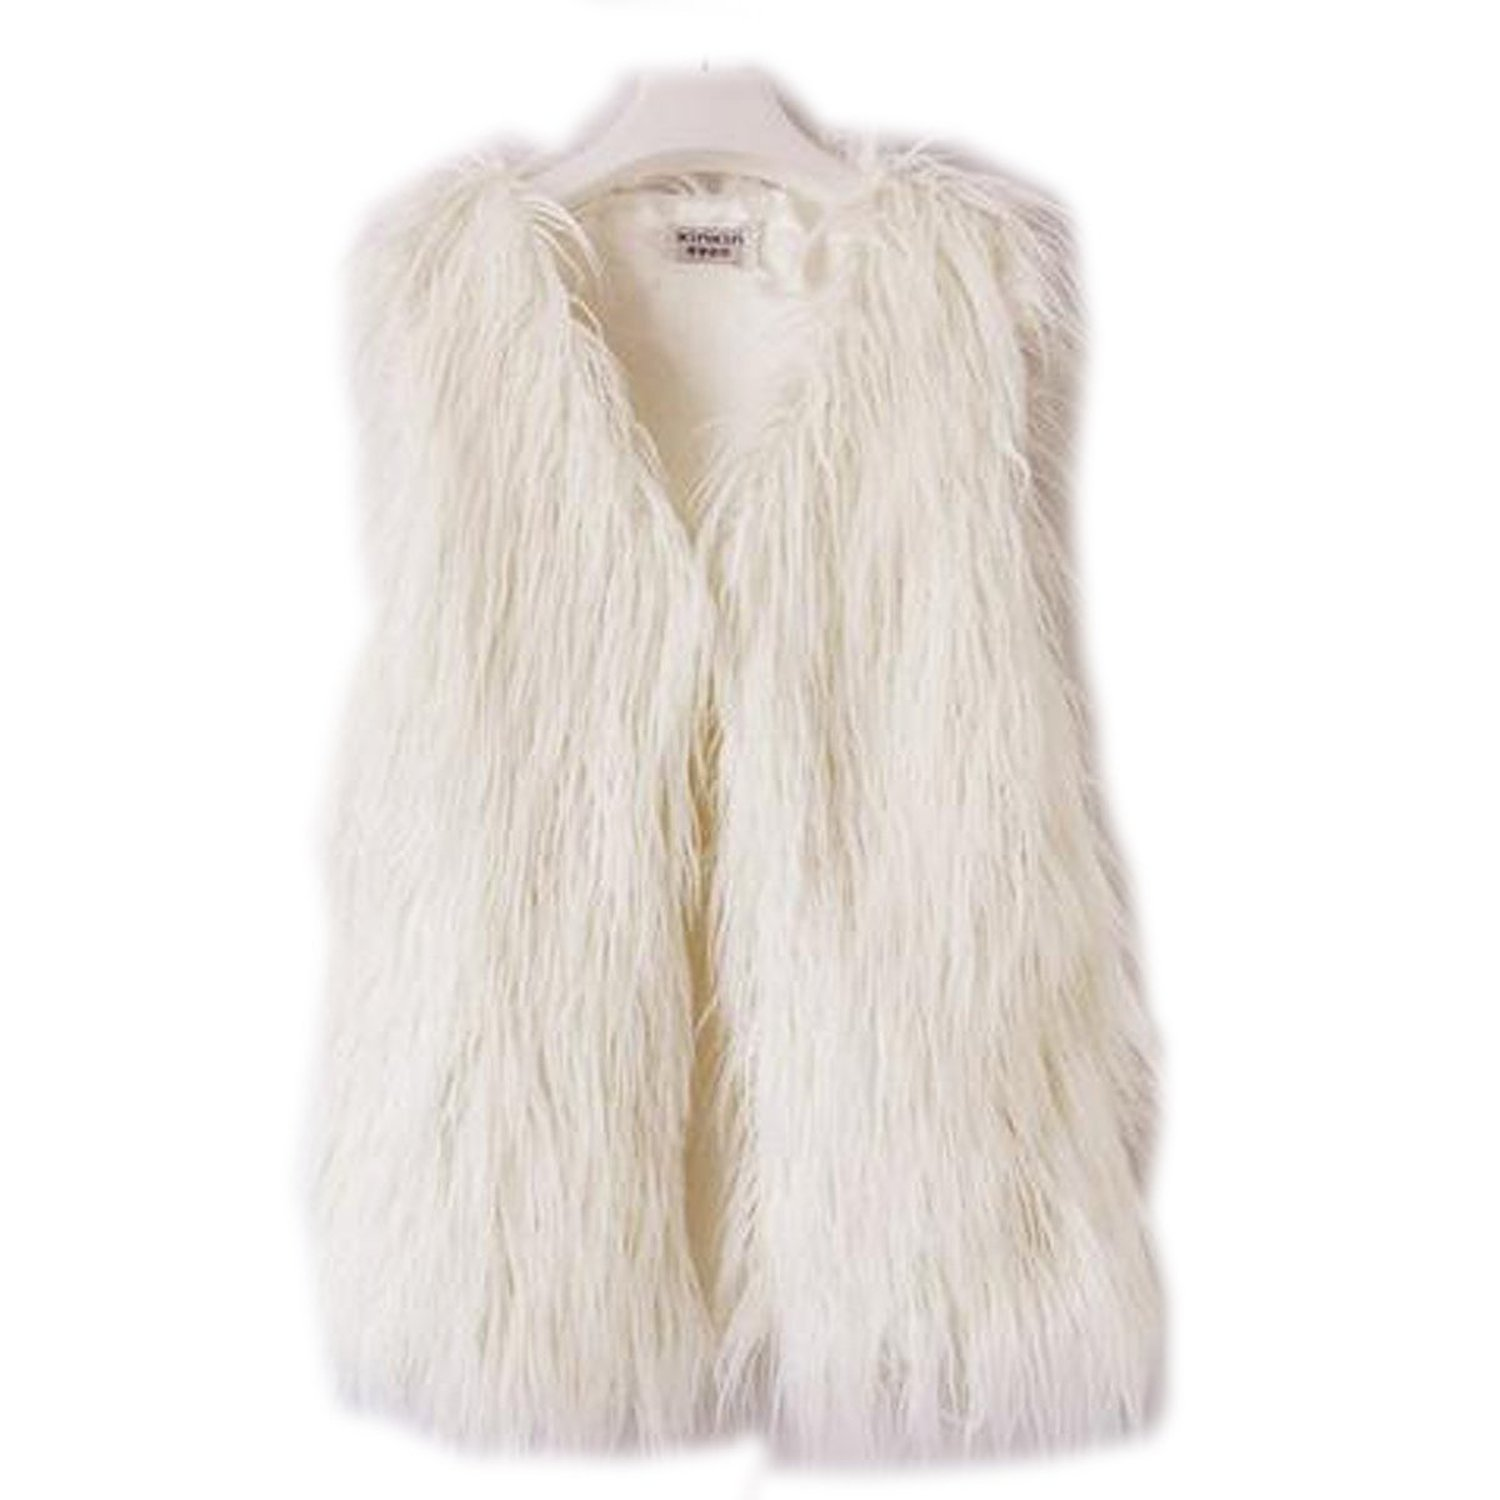 Zeagoo 2014 autumn winter sleeveless warm faux fur short vest jacket waistcoat coat at amazon women's coats shop